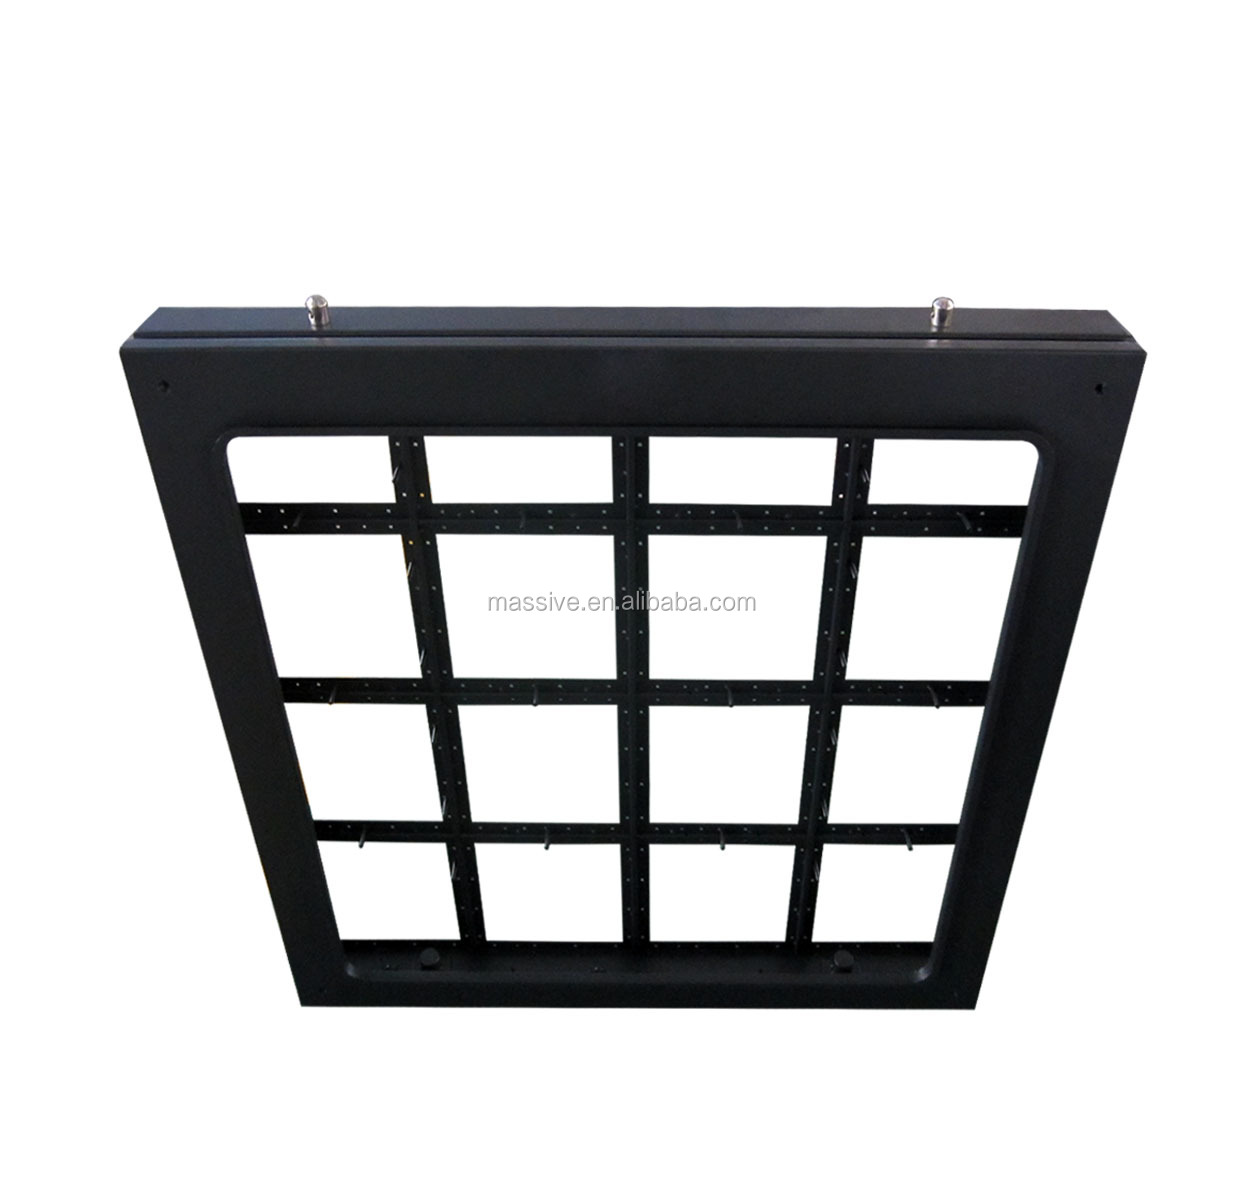 Simple led module frame,Led screen parts,Led video wall